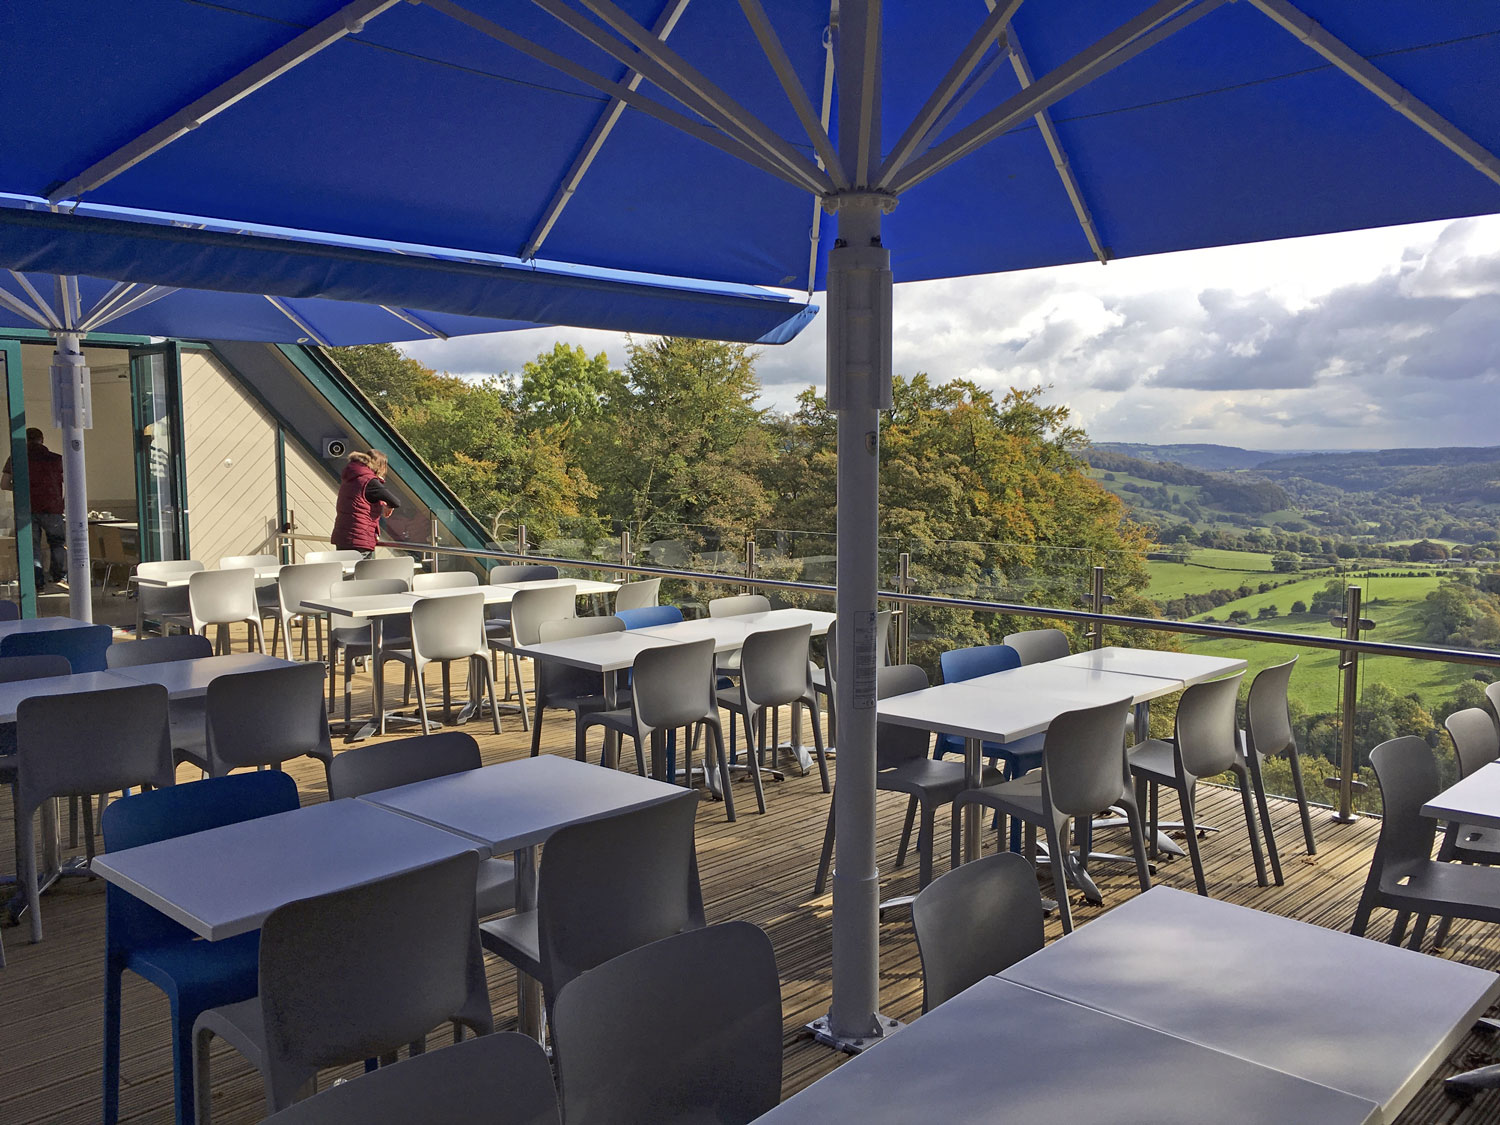 The new terrace to improve the catering operation,high above the derwent valley, Derbyshire